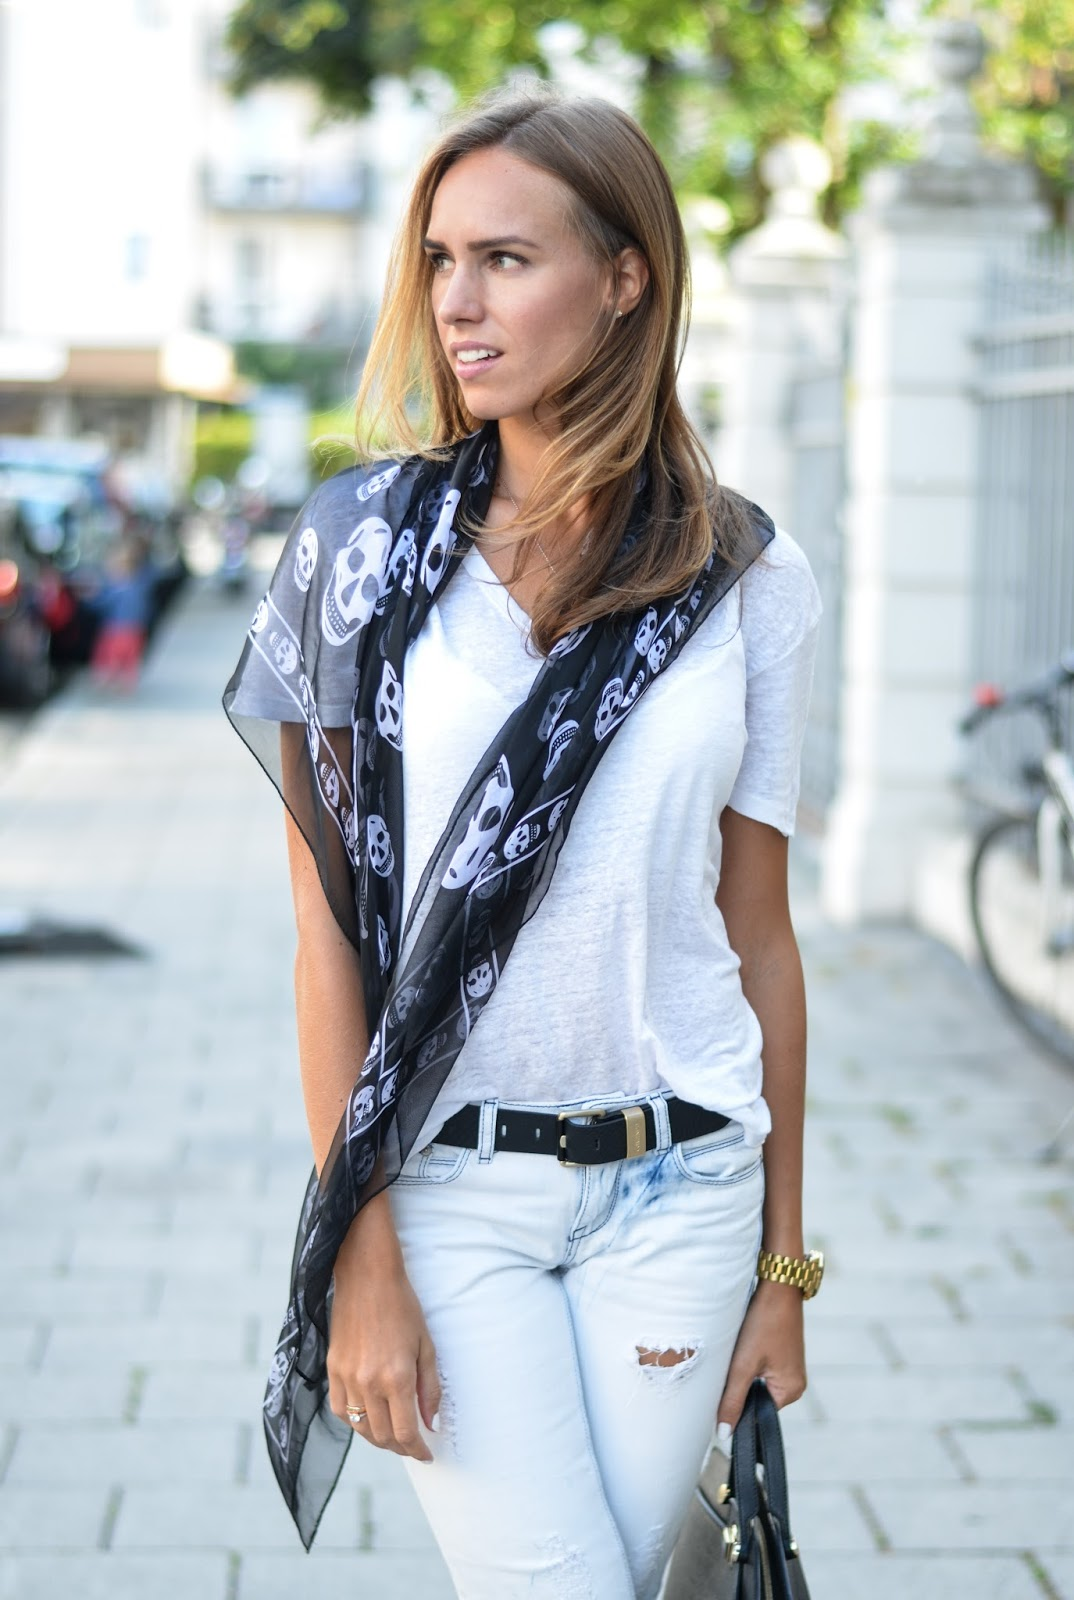 kristjaana mere white t-shirt jeans black alexander mcqueen scull scarf summer outfit